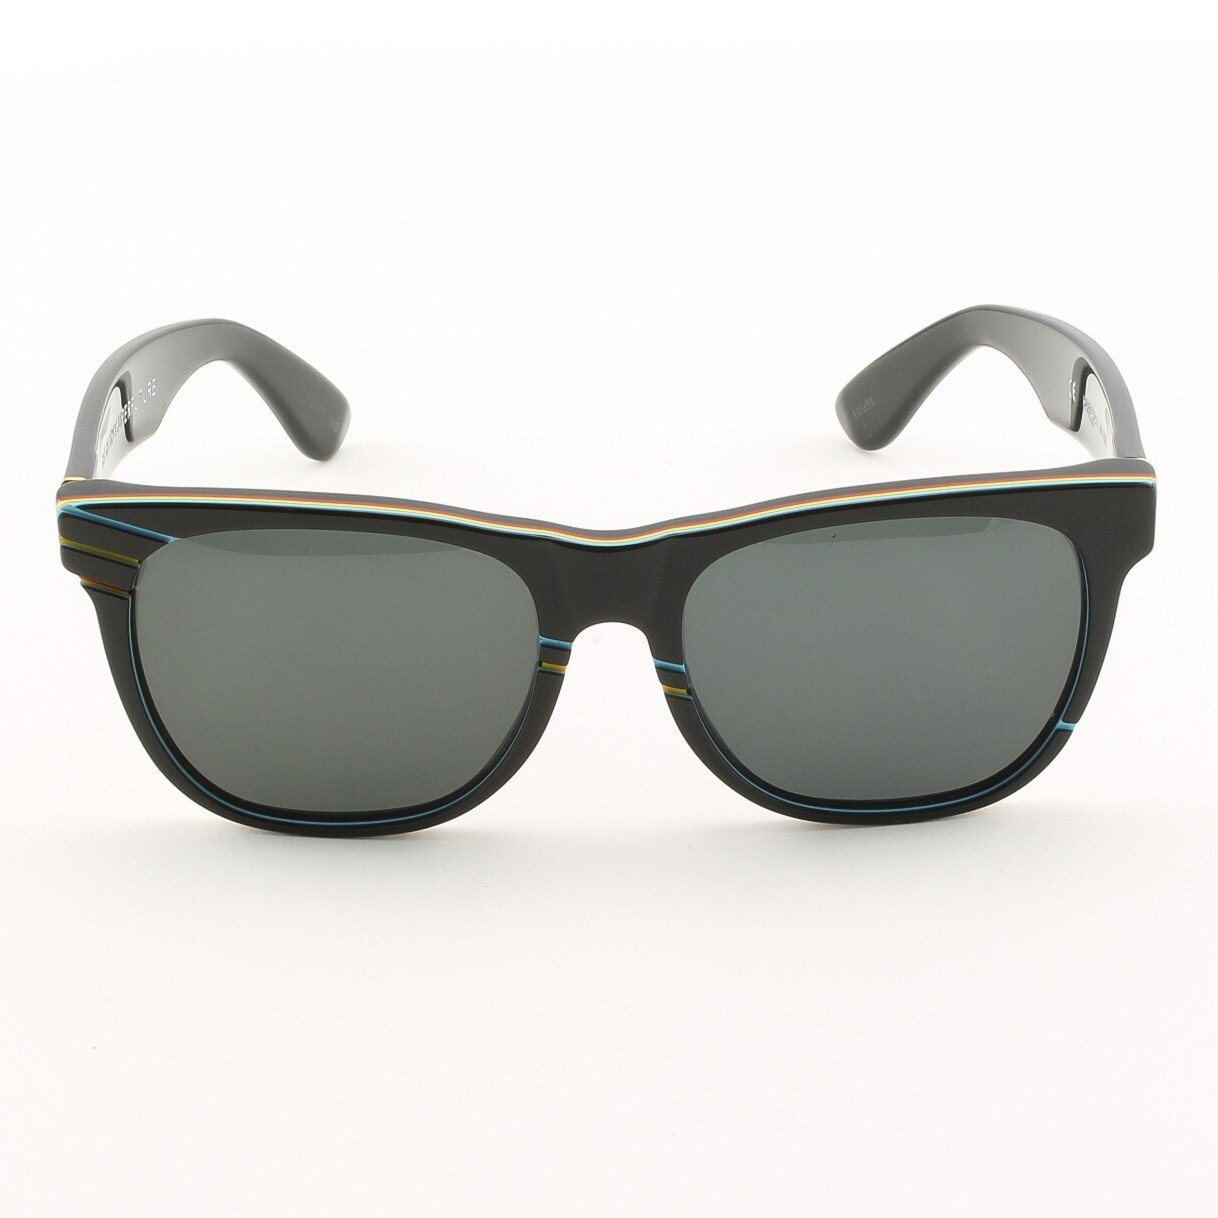 Super Classic 145 Wayfarer Sunglasses Black with Yellow Blue and Red Stripes by RETROSUPERFUTURE